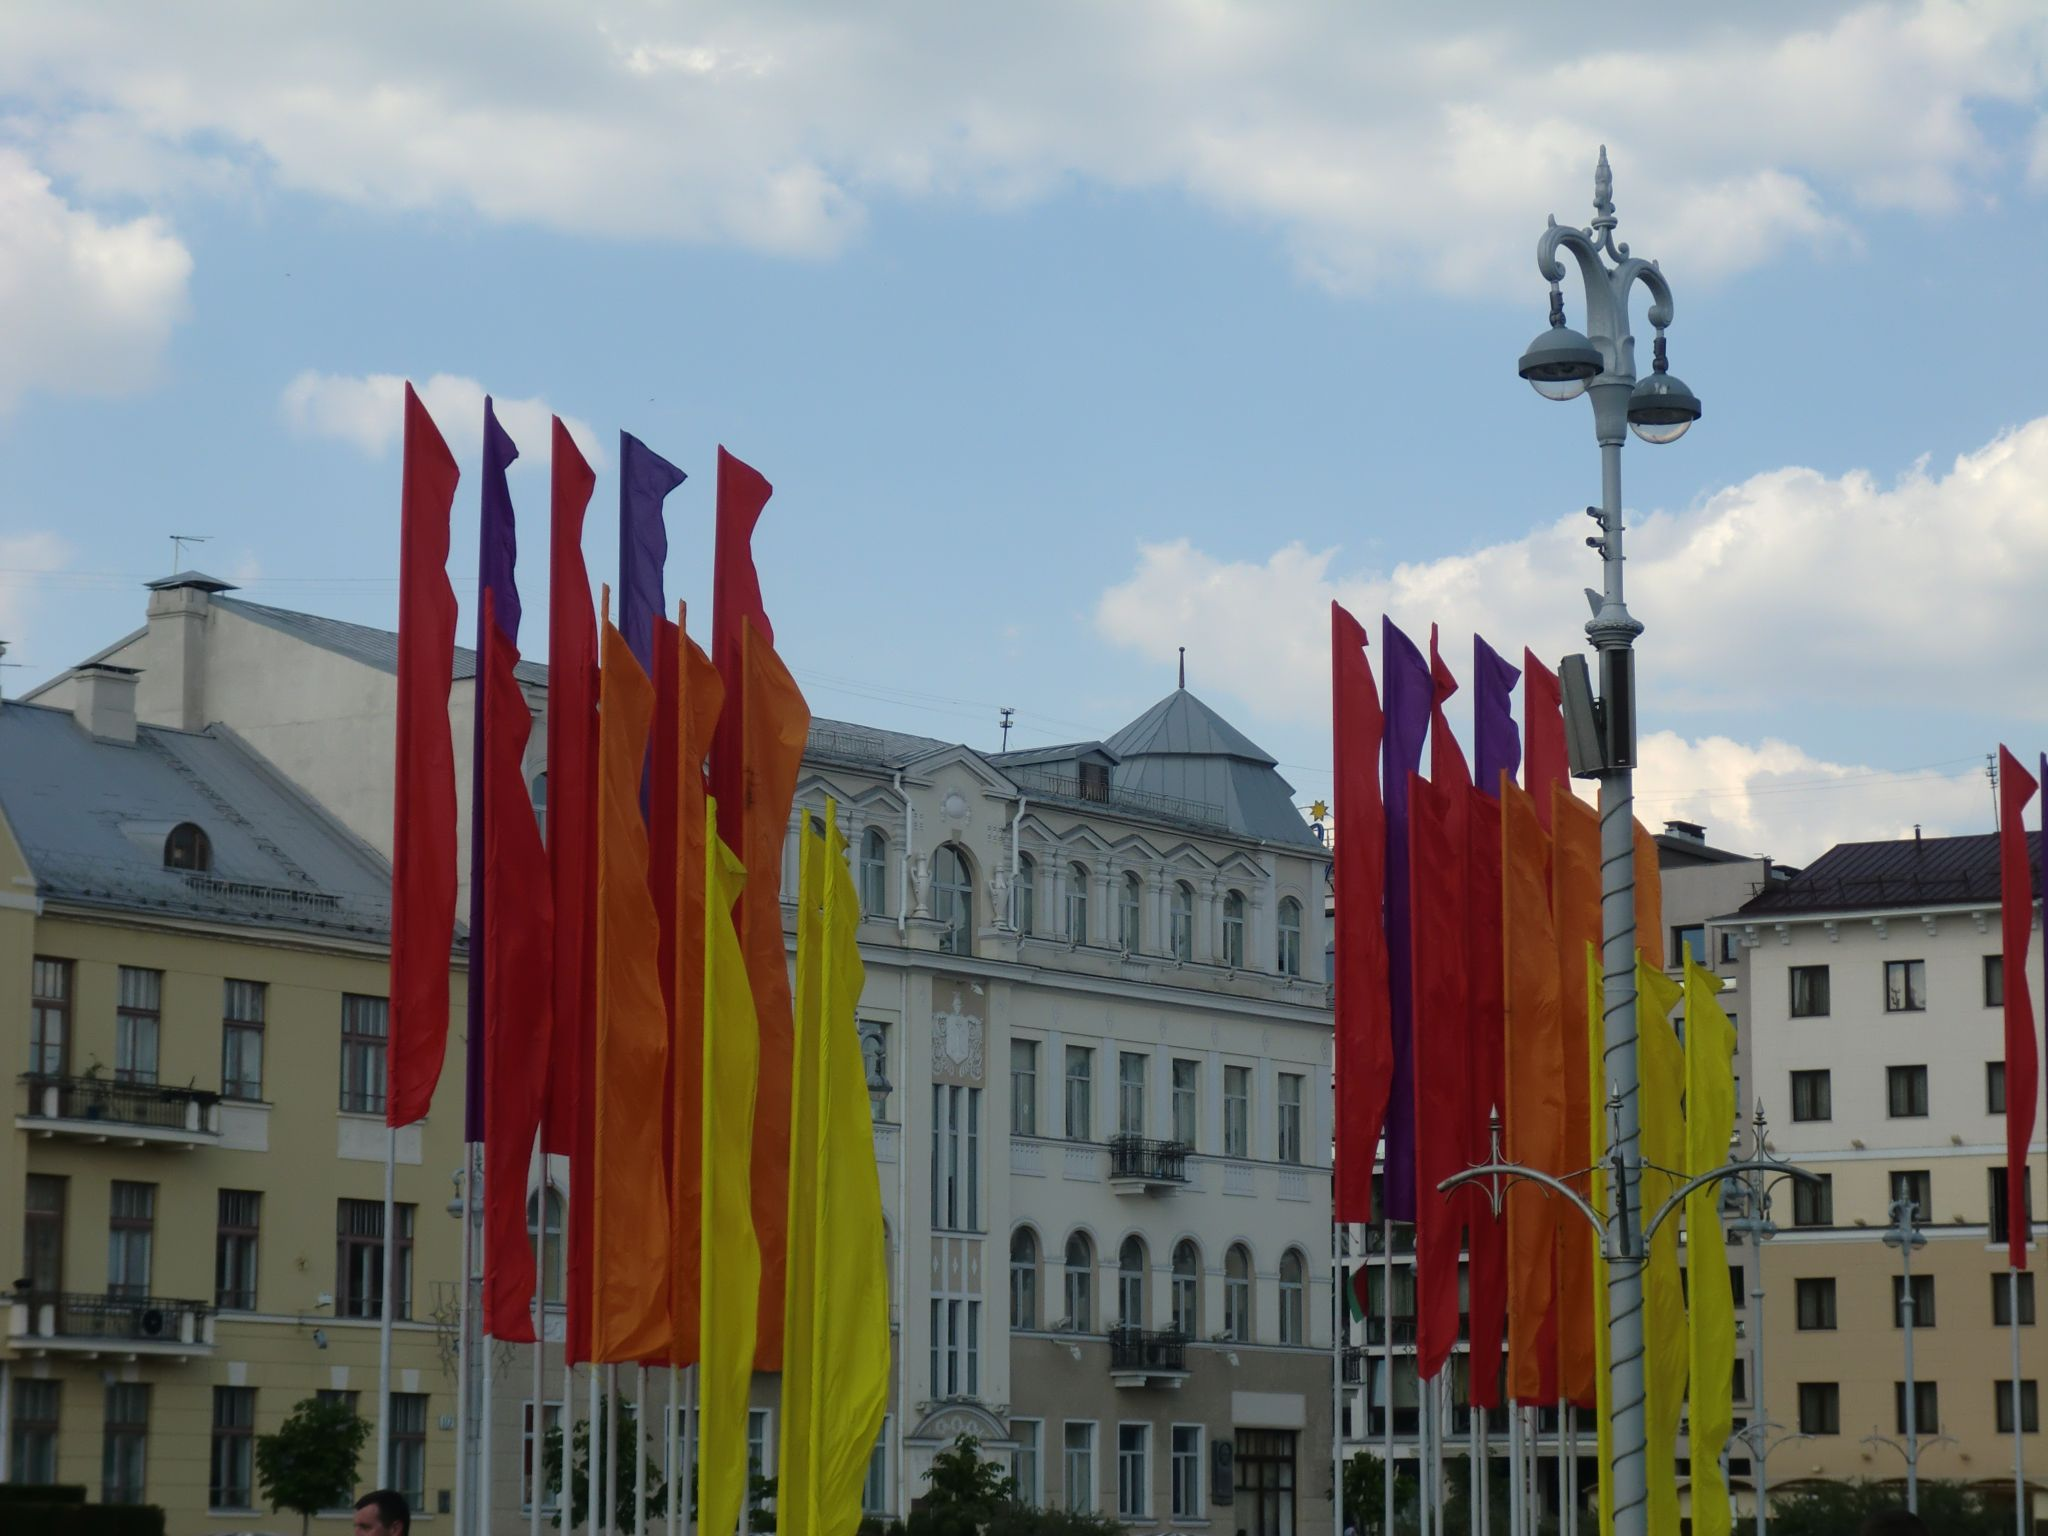 Minsk square 1 - Minsk, 1 amazing city you have to see